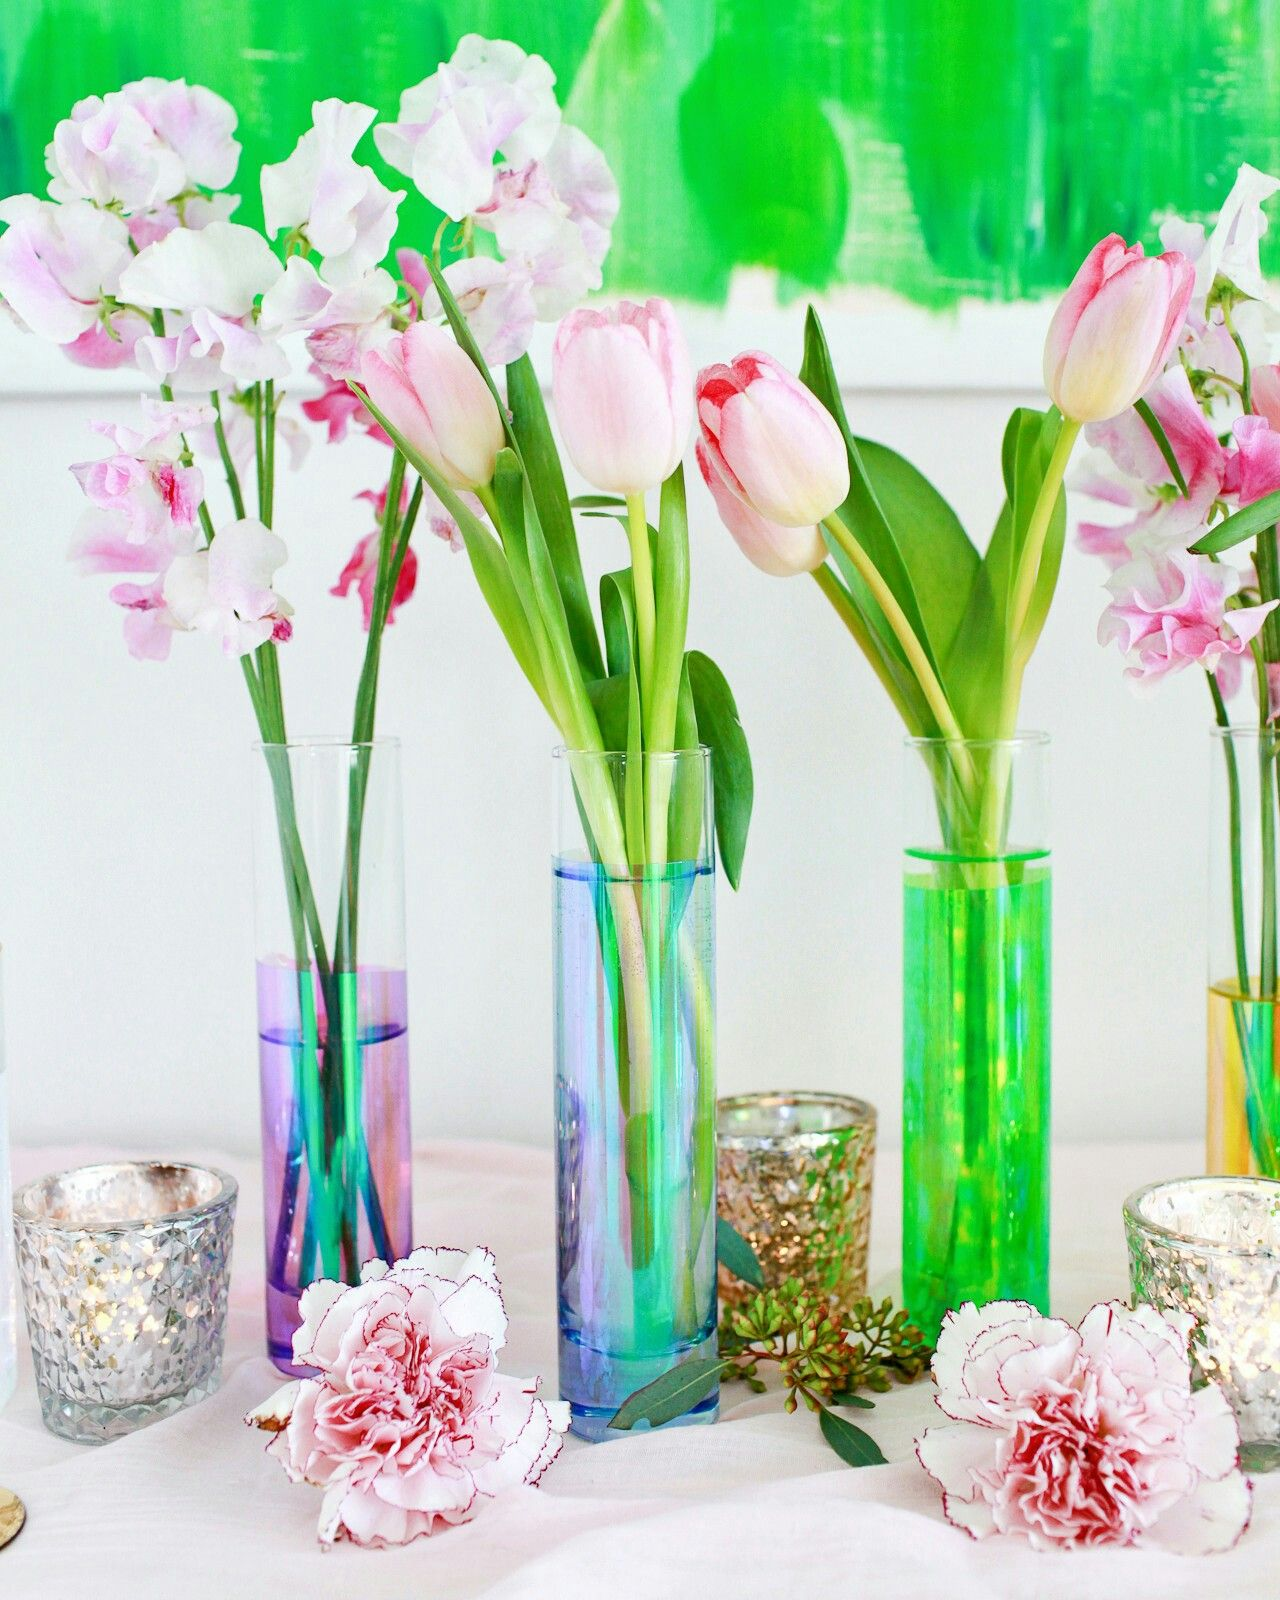 Captivating DIY Iridescent Rainbow Vases: A Quick And Easy Way To Add A Fun Dose Of  Color To Your Next Birthday Party, Baby Shower, Or Gathering! Good Looking